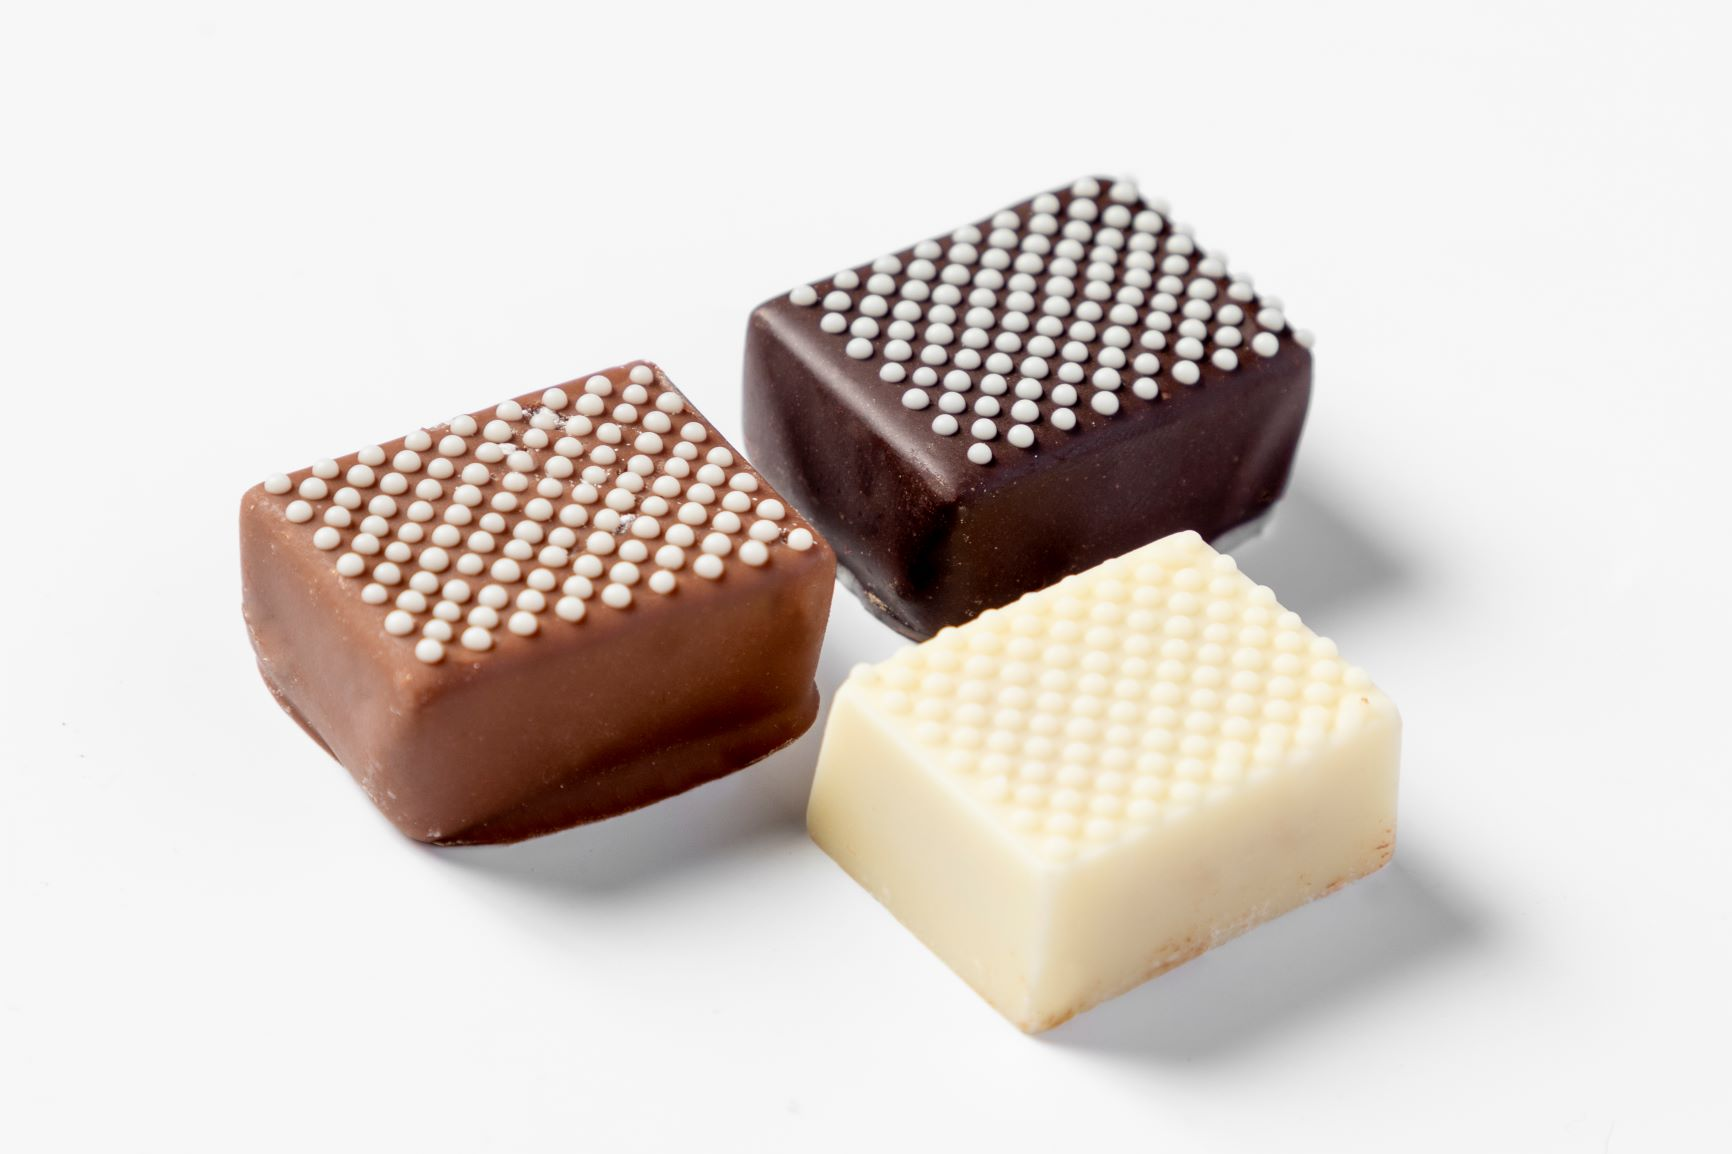 Three chocolate pralines decorated with a FoodJet chocolate depositor